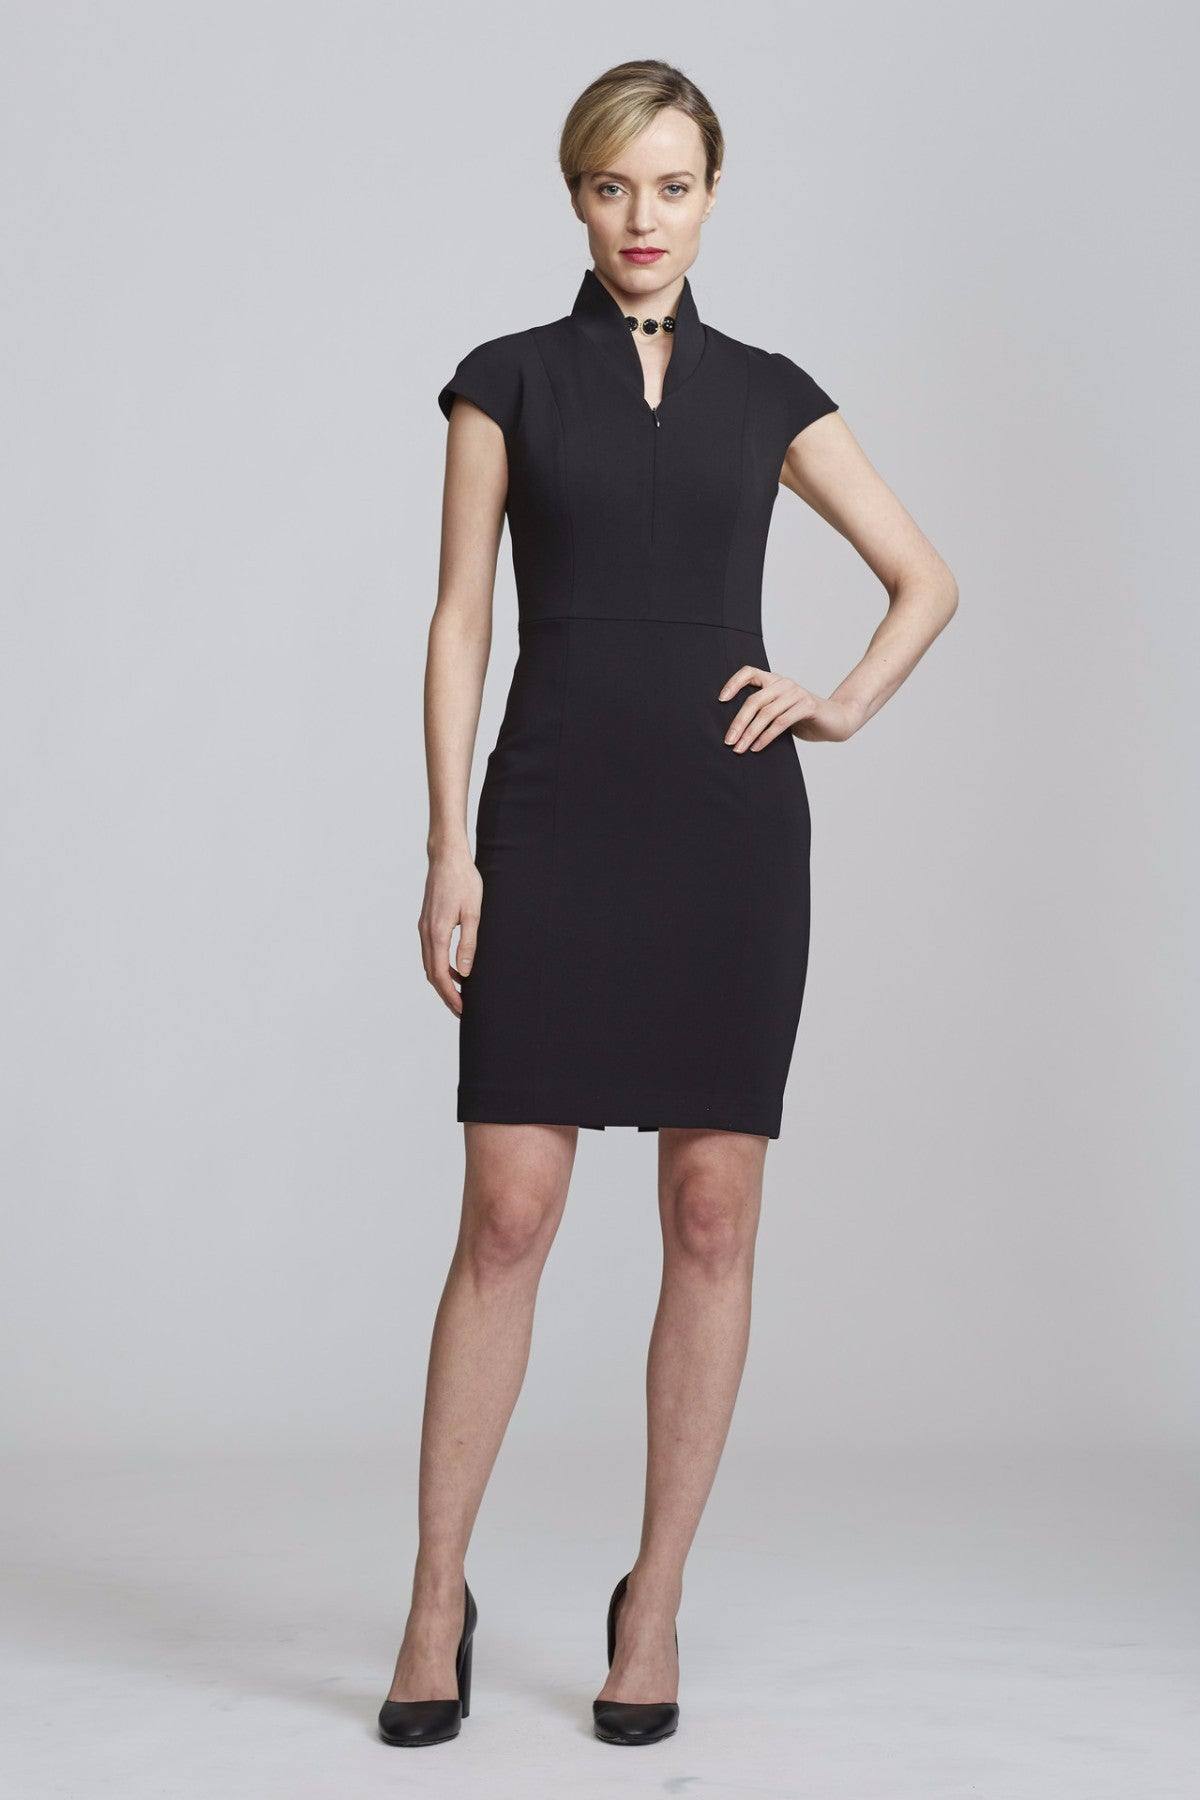 Front Women's Evelyn Dress in Black | Nora Gardner